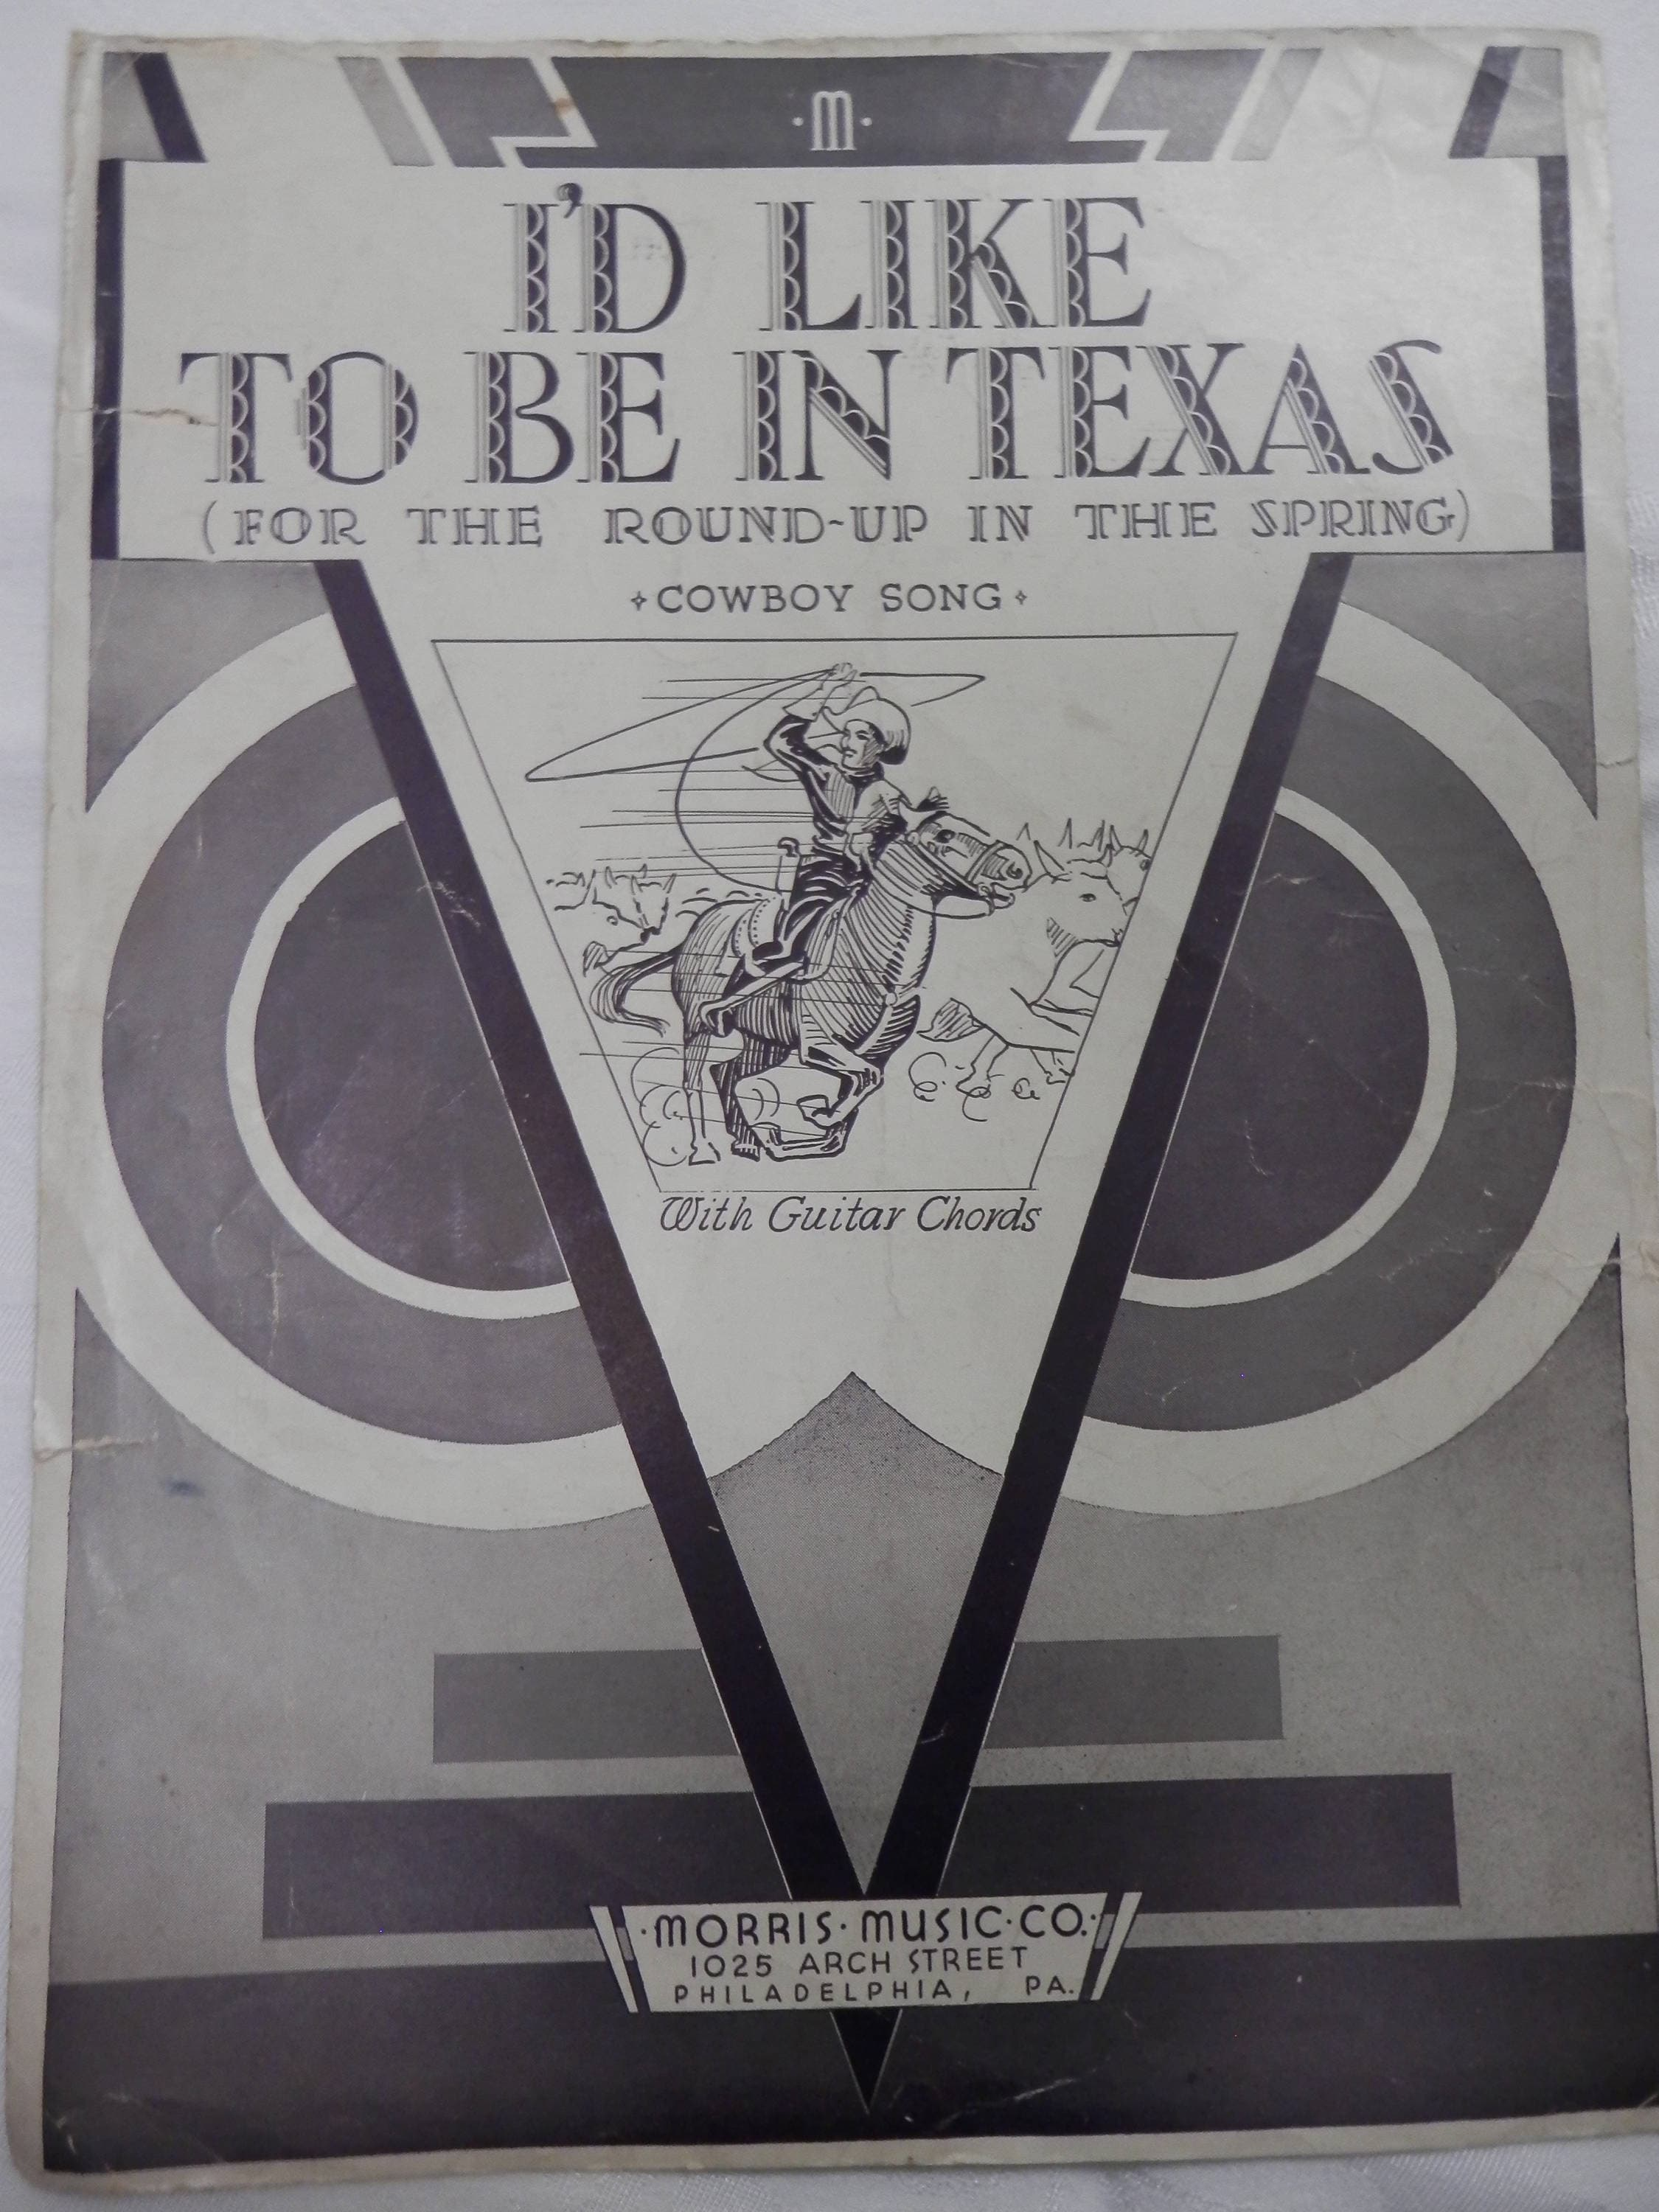 Id Like To Be In Texas Sheet Music By Morris Music Co